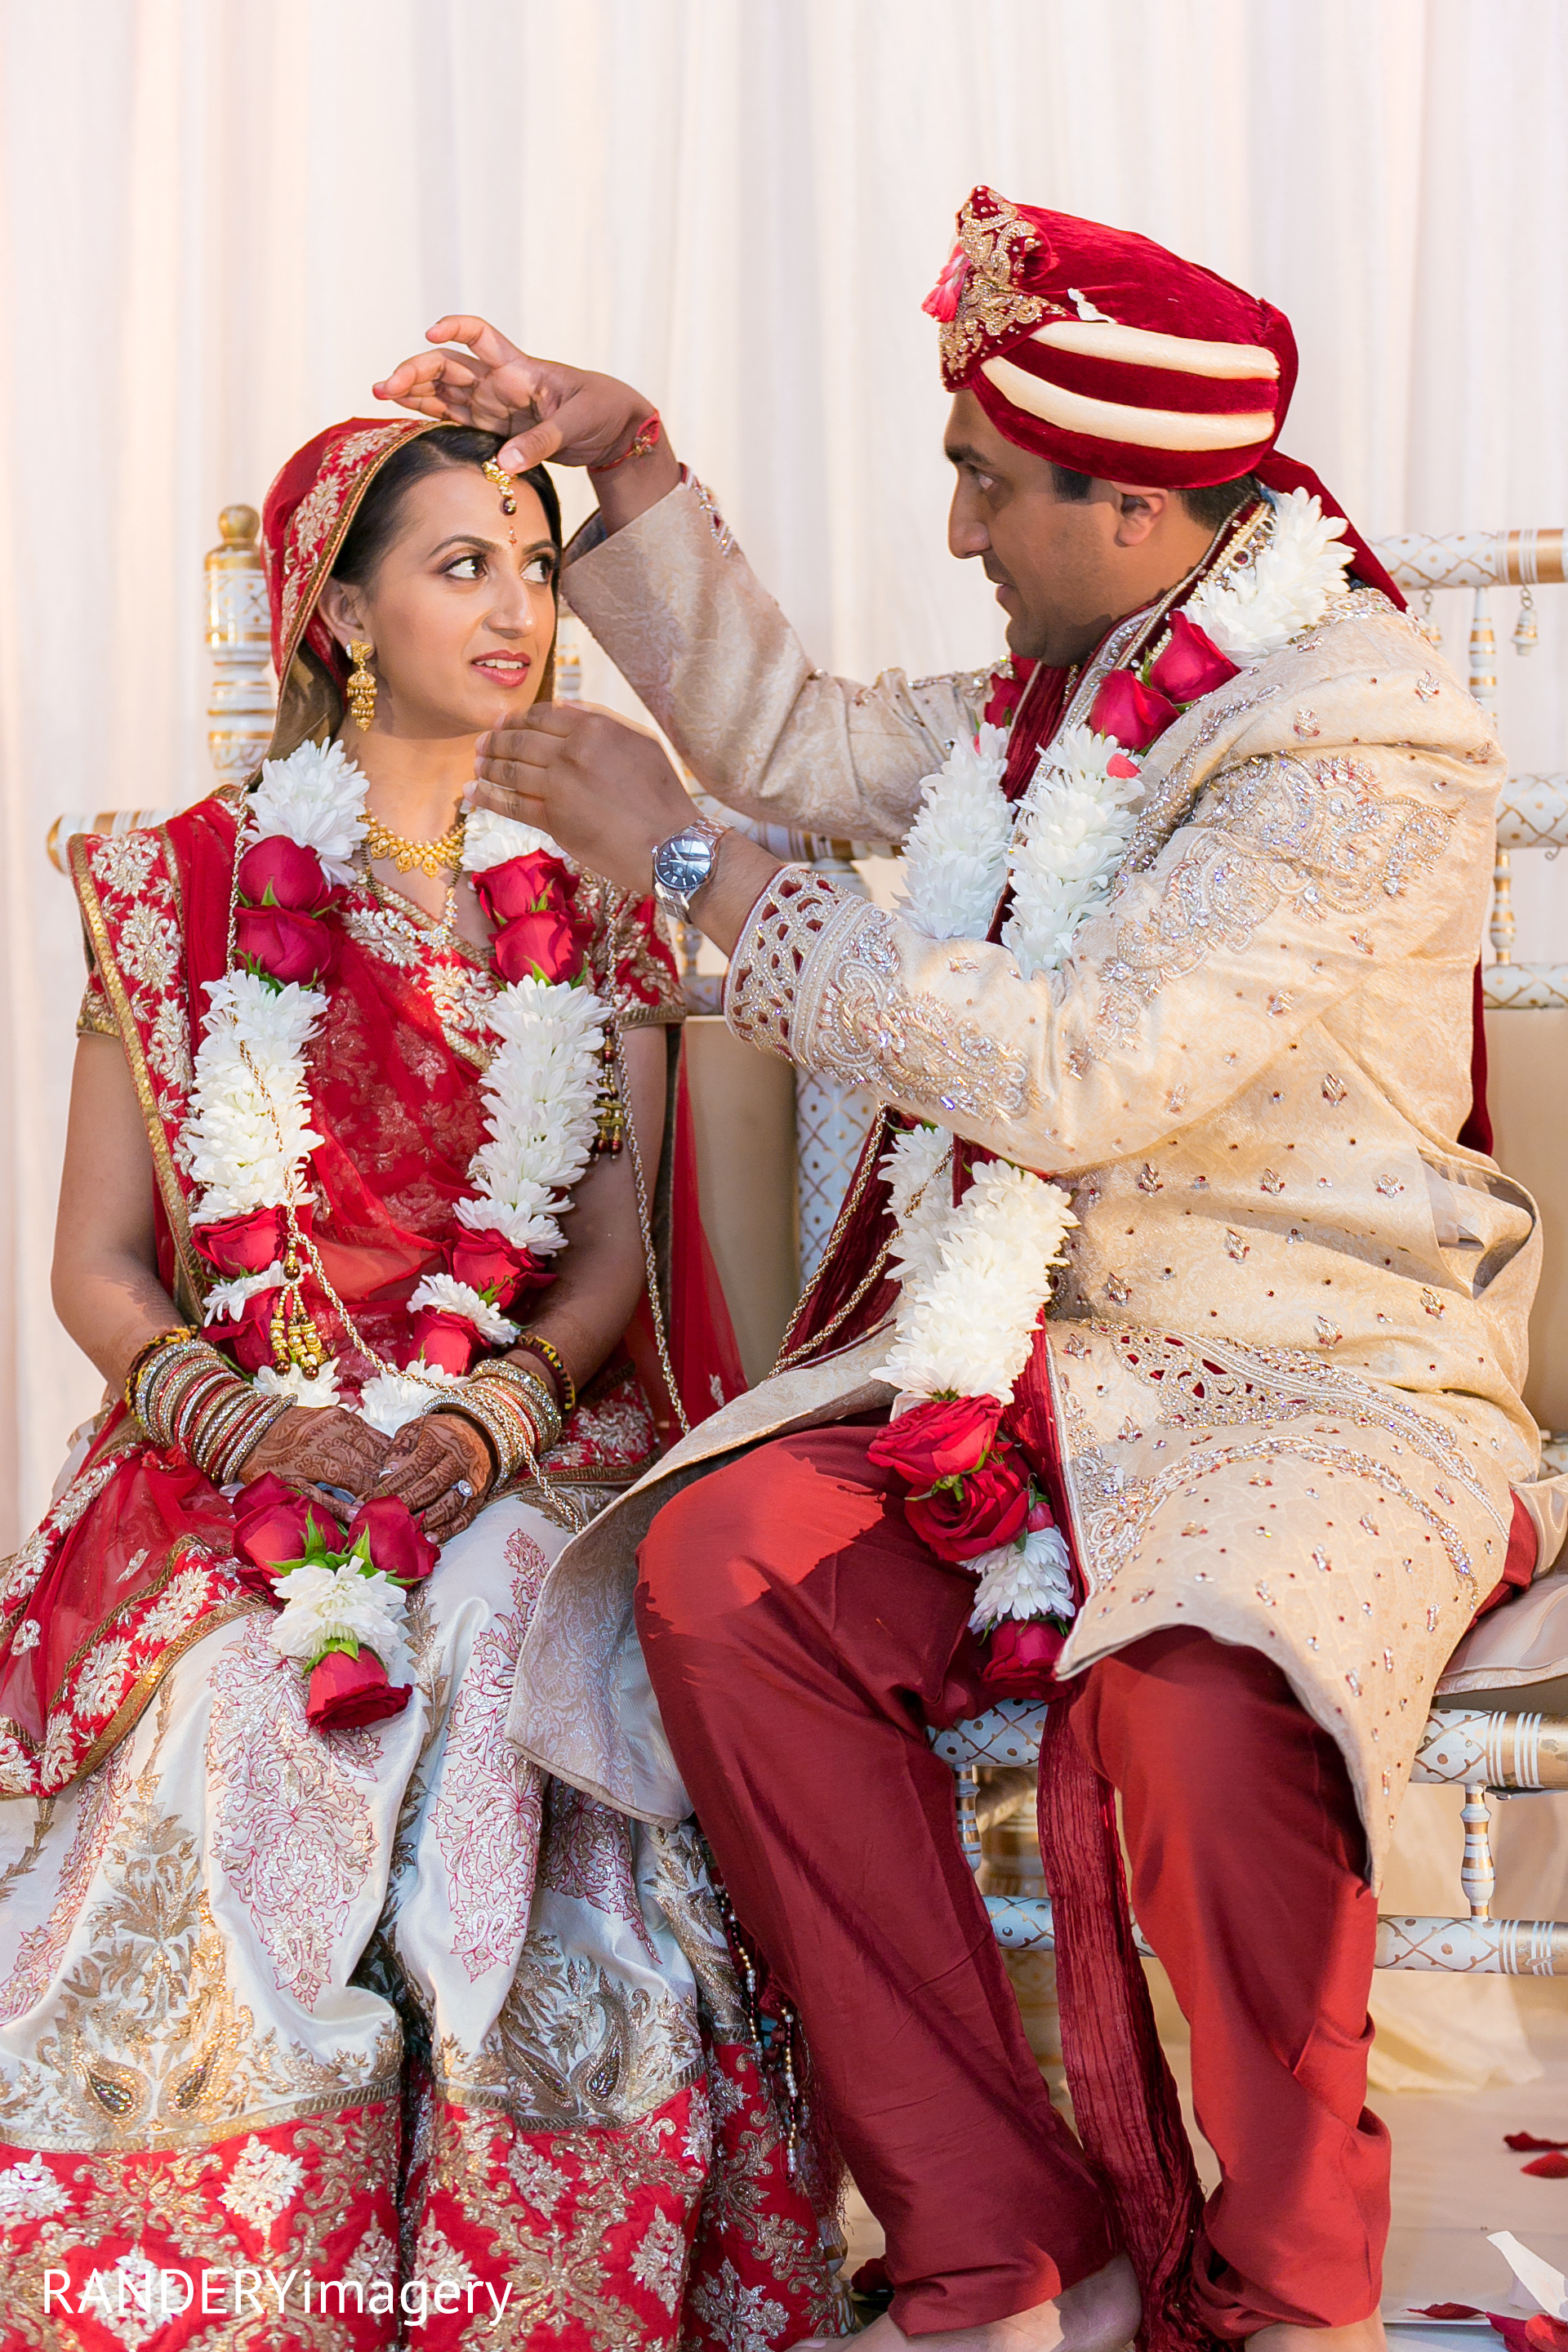 Ceremony in anaheim ca indian wedding by randeryimagery for Indian jewelry in schaumburg il